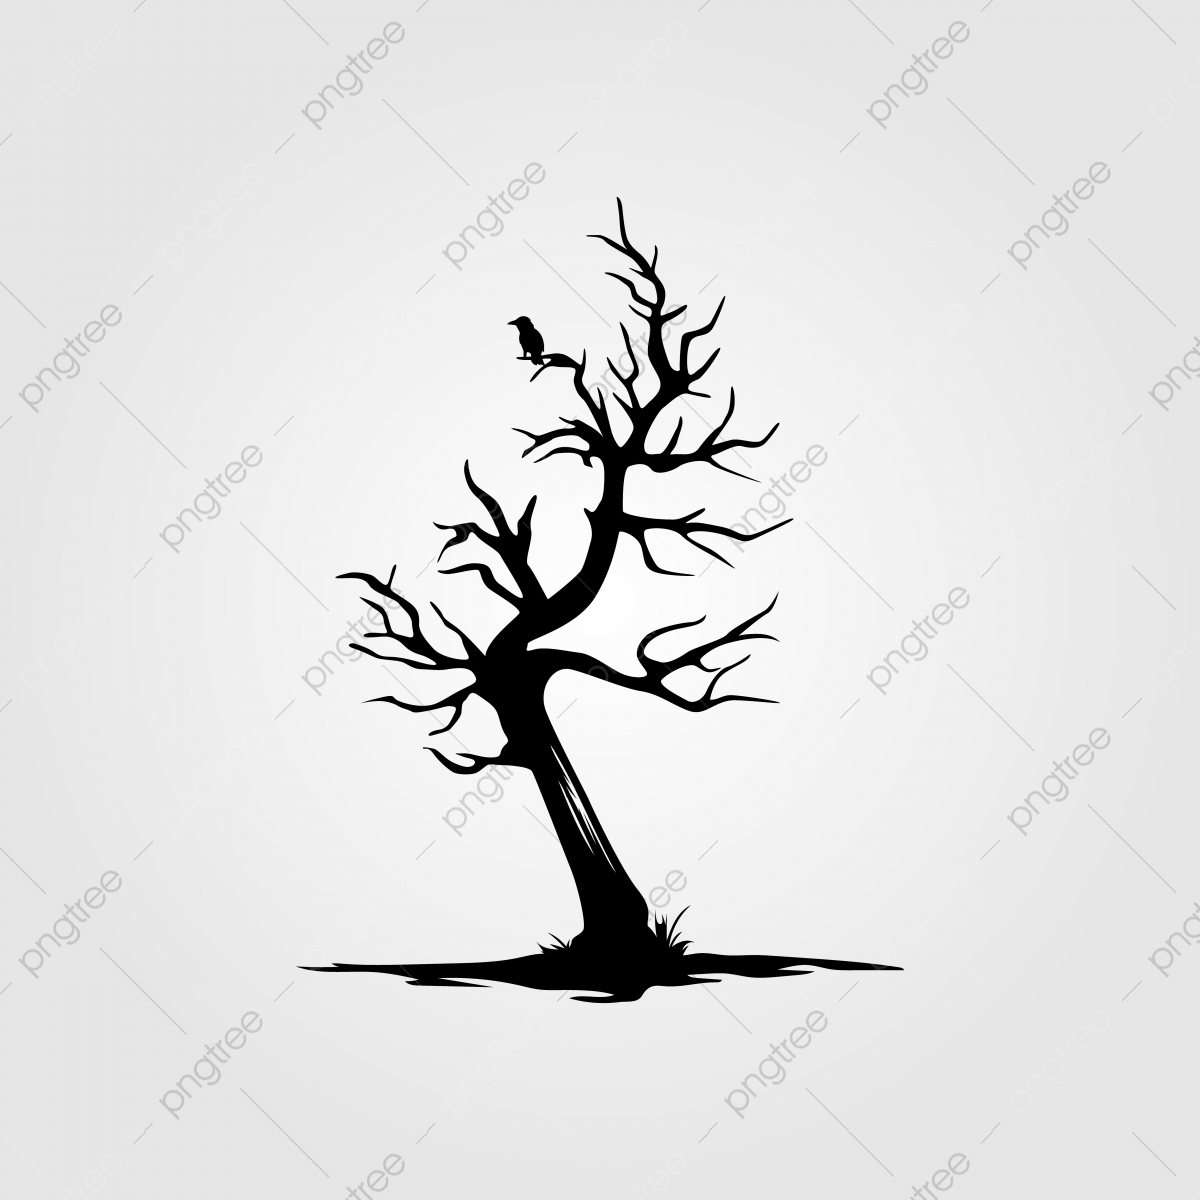 Vintage Dead Tree With Alone Bird Silhouette Design Illustration Template Download On Pngtree